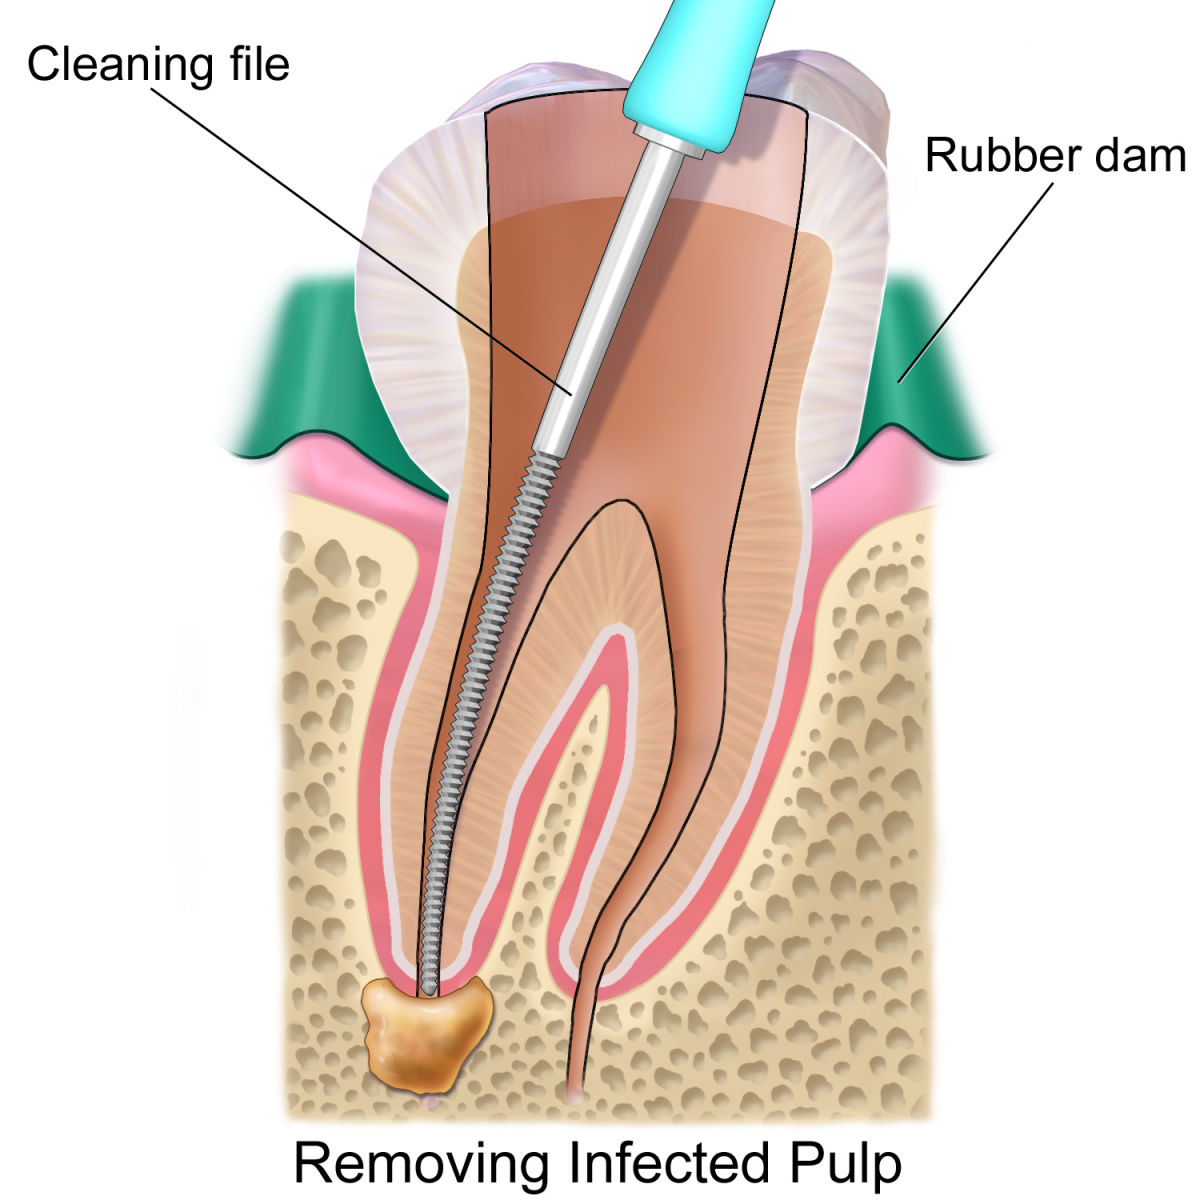 Common Root Canal Systems